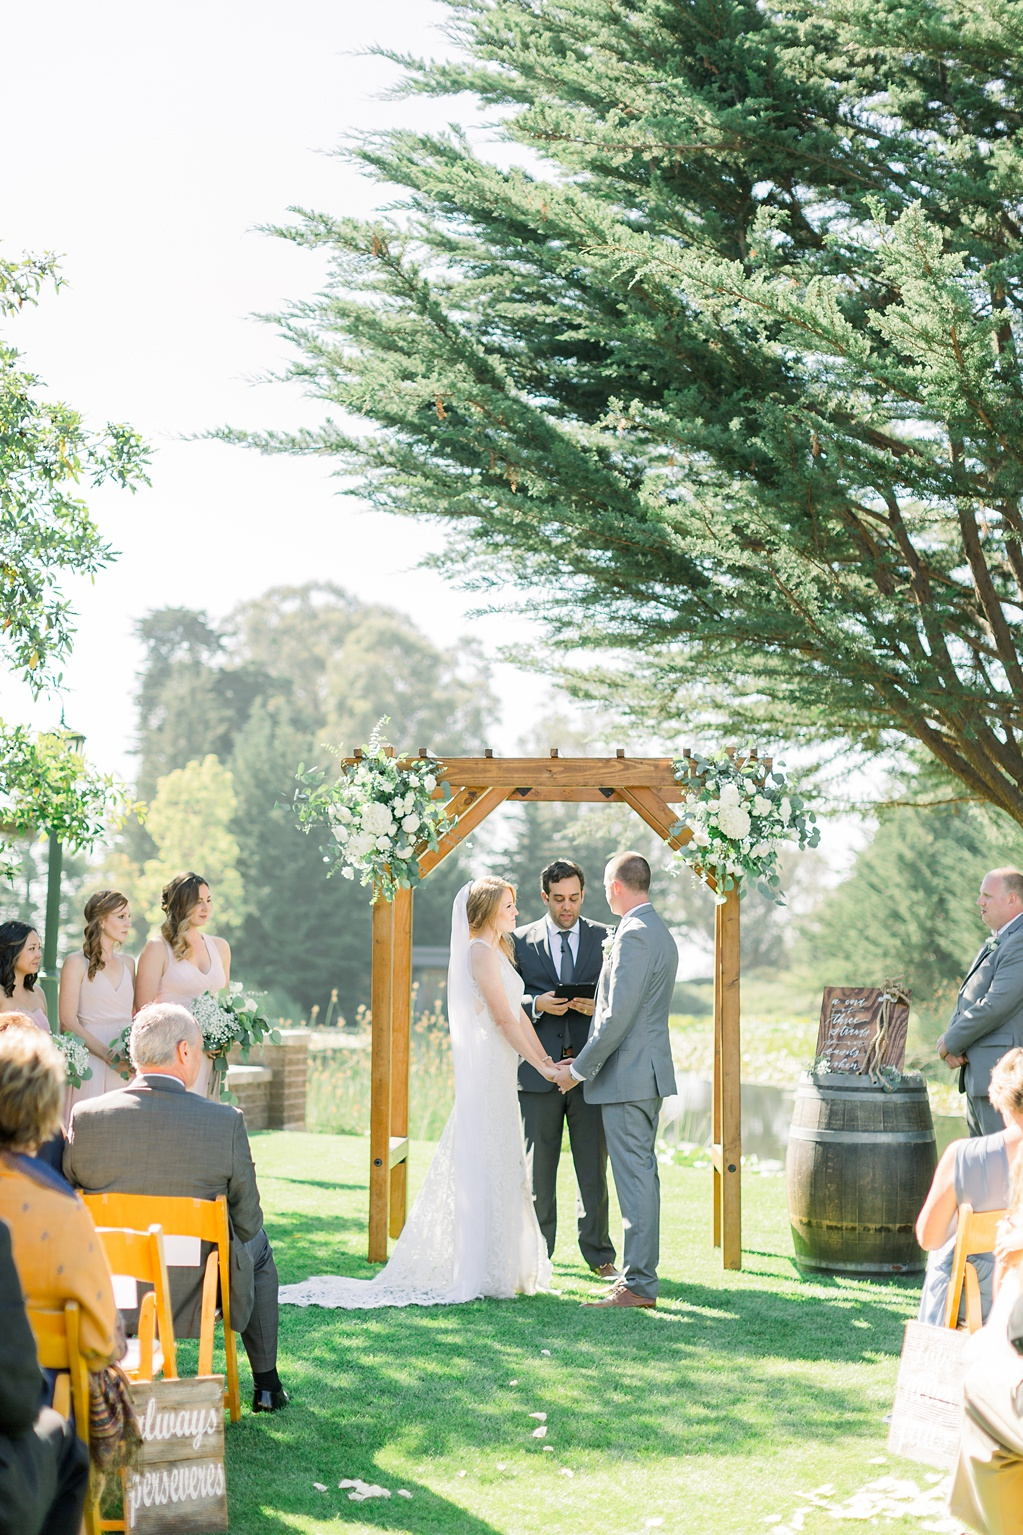 White Barn Inspired Summer Wedding In The Valley of Arroyo Grande, California by Wedding Photographer Madison Ellis. (54)